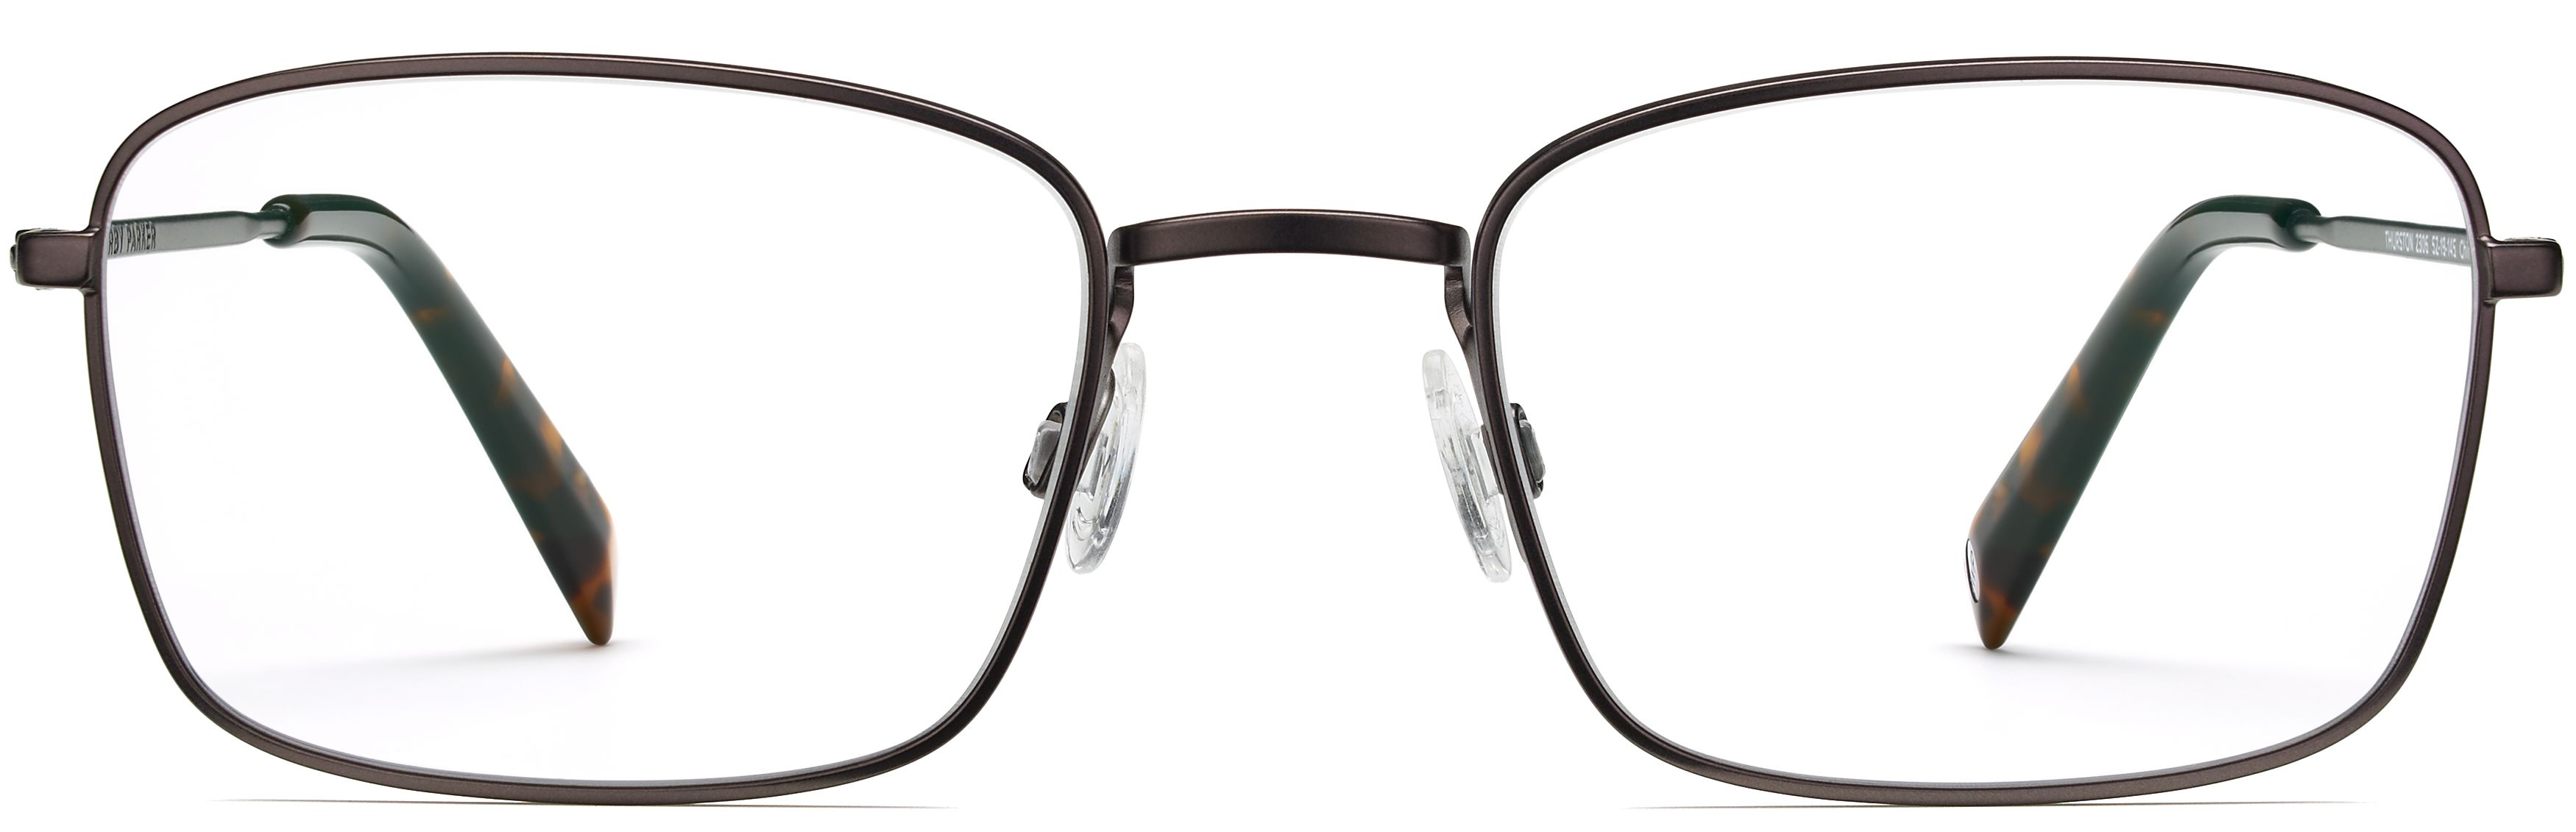 32cb59e1f072 Thurston Eyeglasses in Carbon for Men